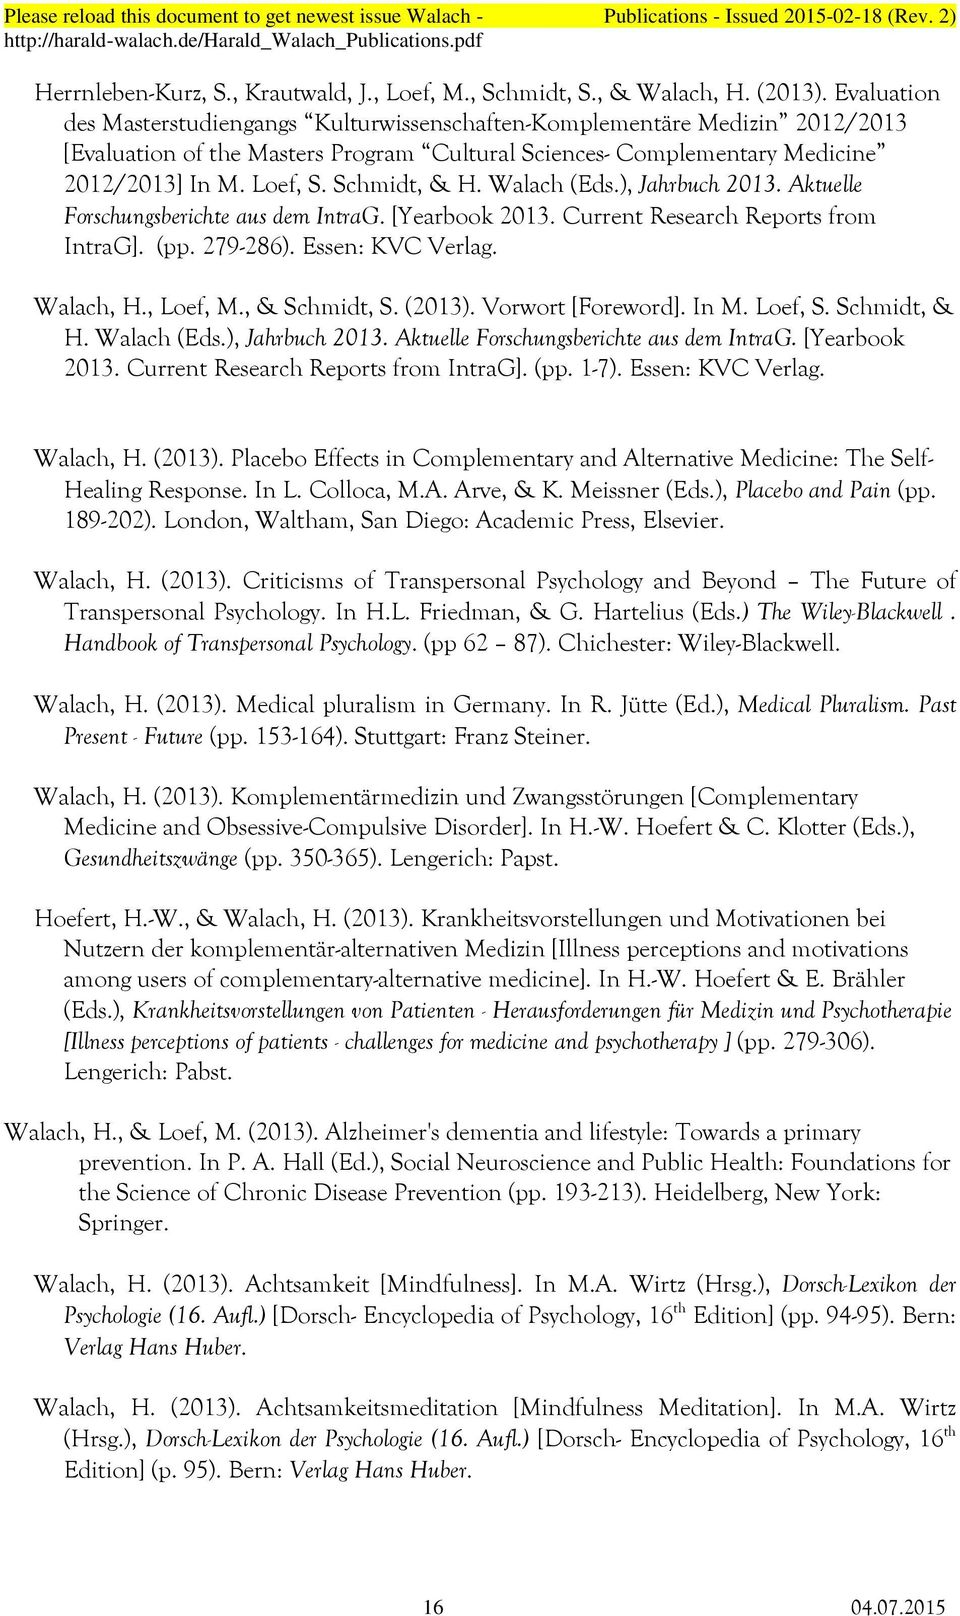 Schmidt, & H. Walach (Eds.), Jahrbuch 2013. Aktuelle Forschungsberichte aus dem IntraG. [Yearbook 2013. Current Research Reports from IntraG]. (pp. 279-286). Essen: KVC Verlag. Walach, H., Loef, M.